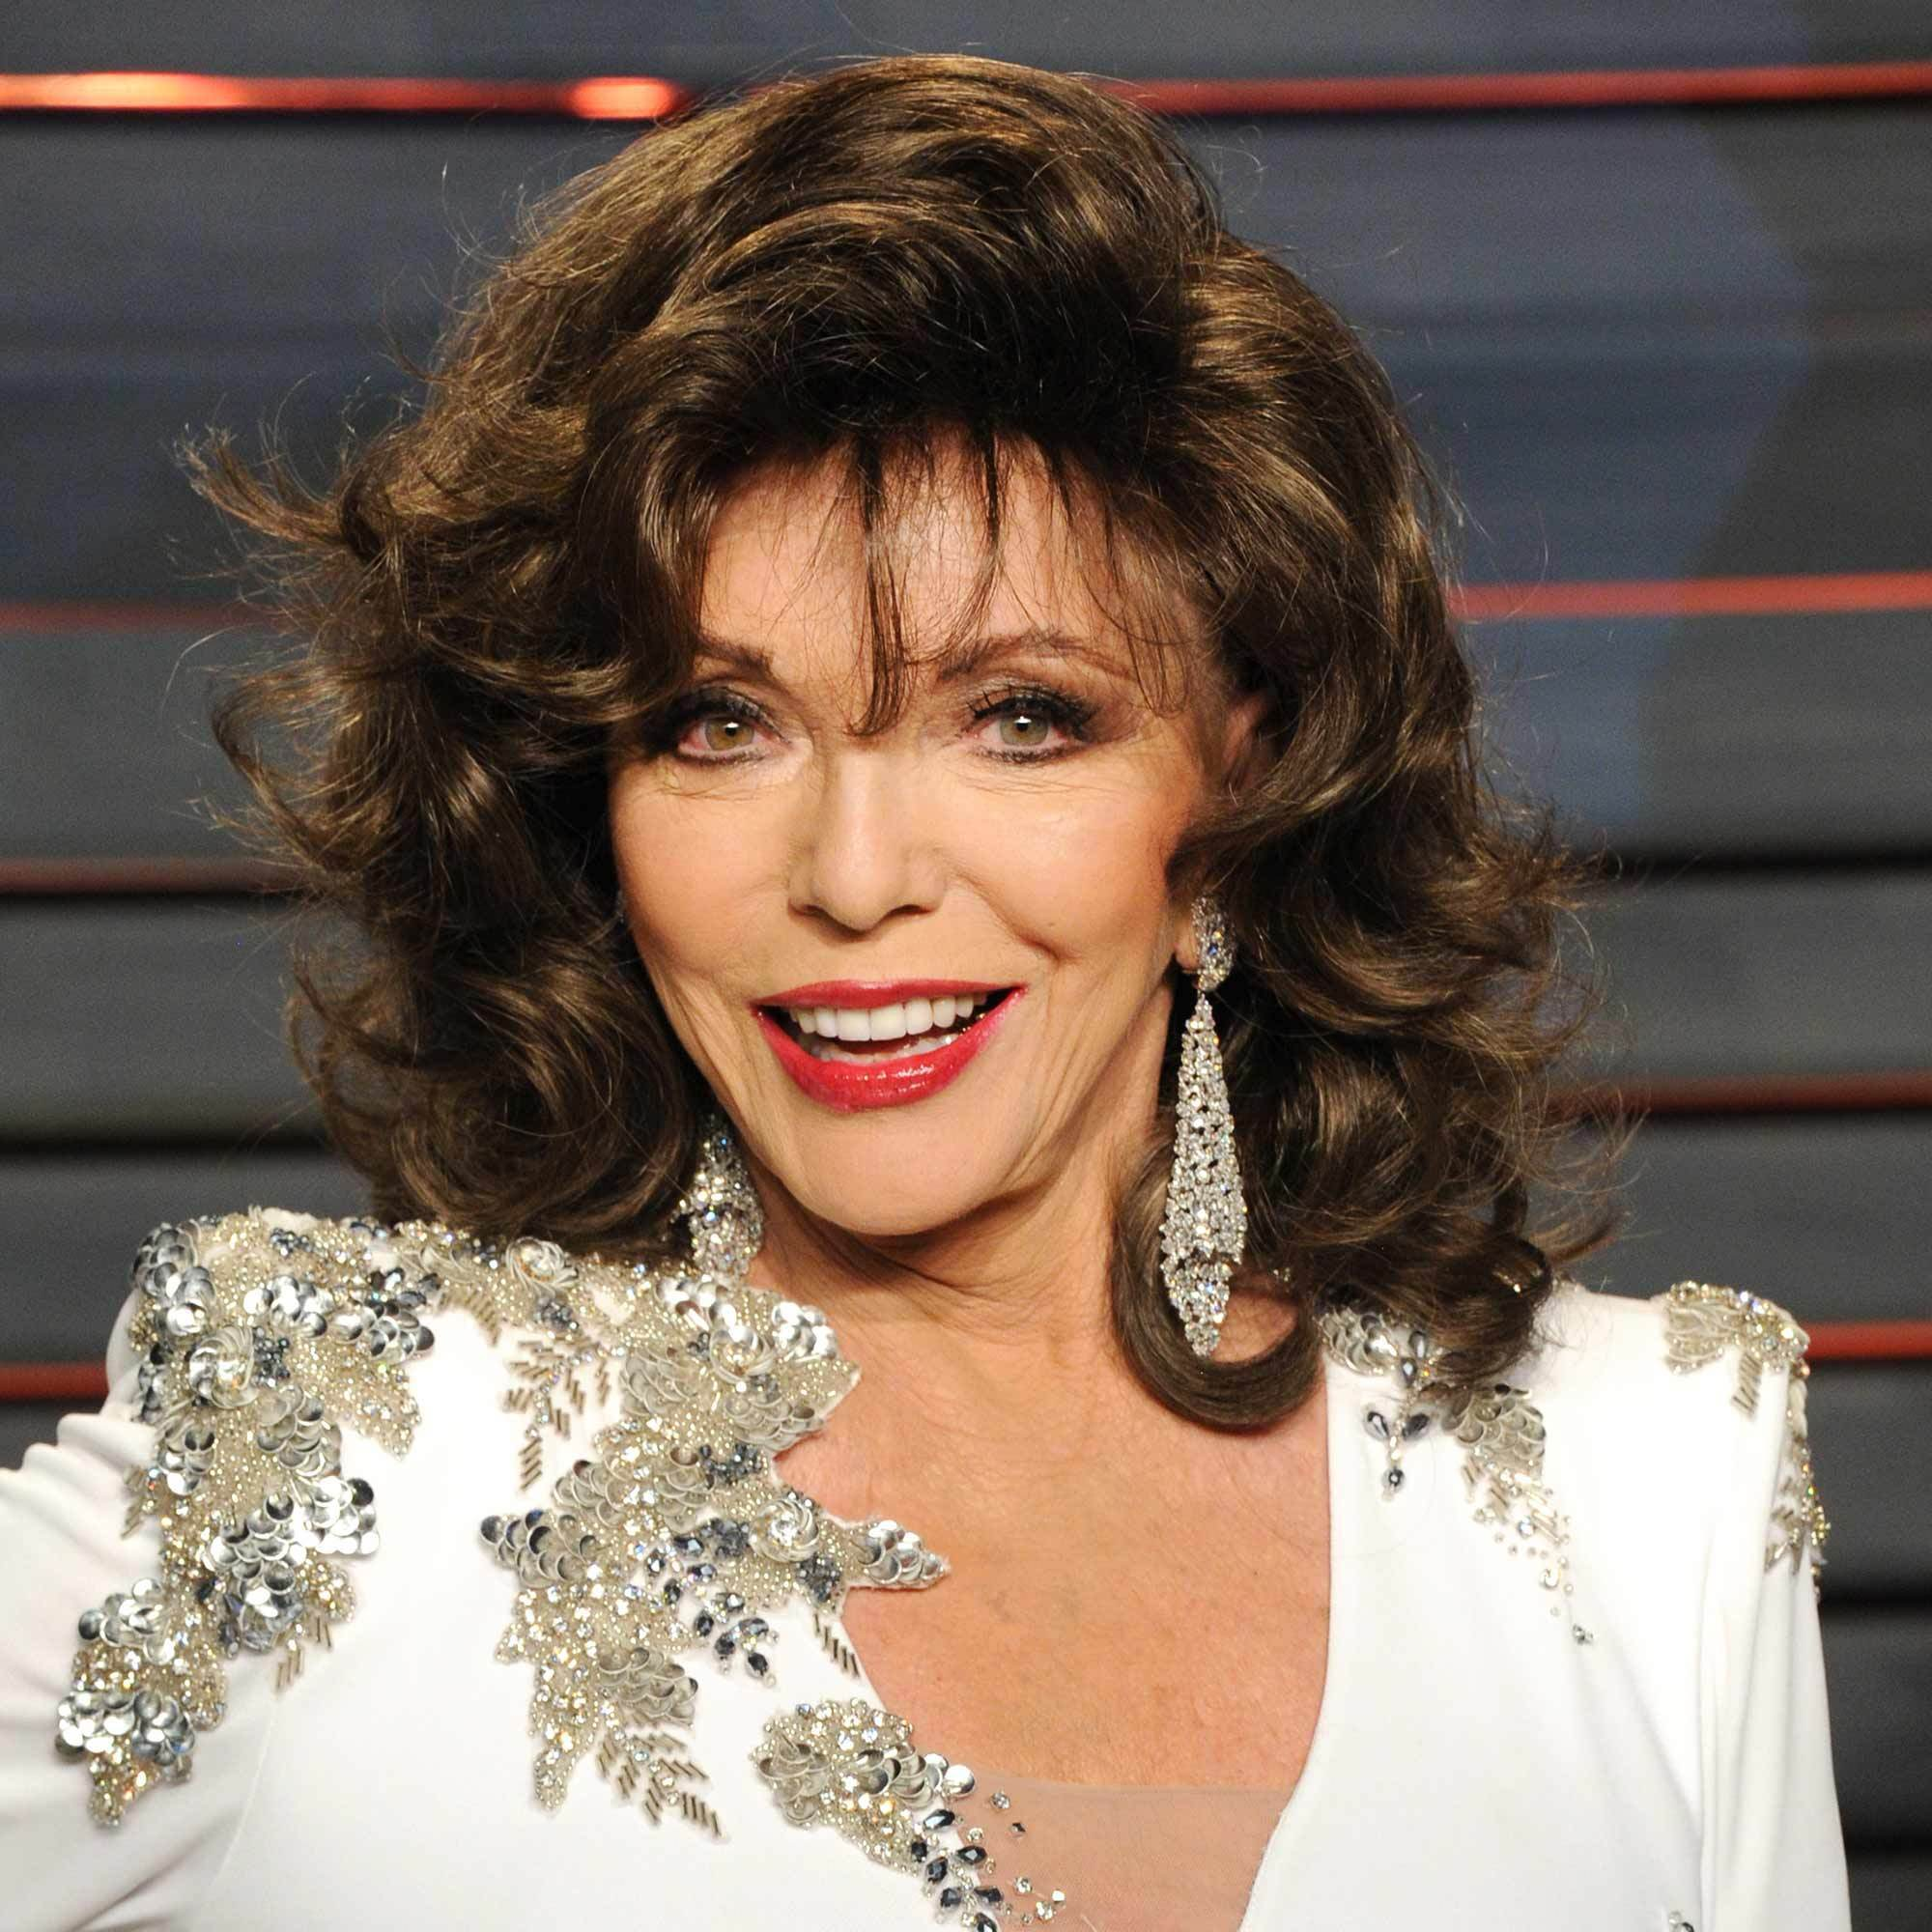 Rules To Live By From Dame Joan Collins